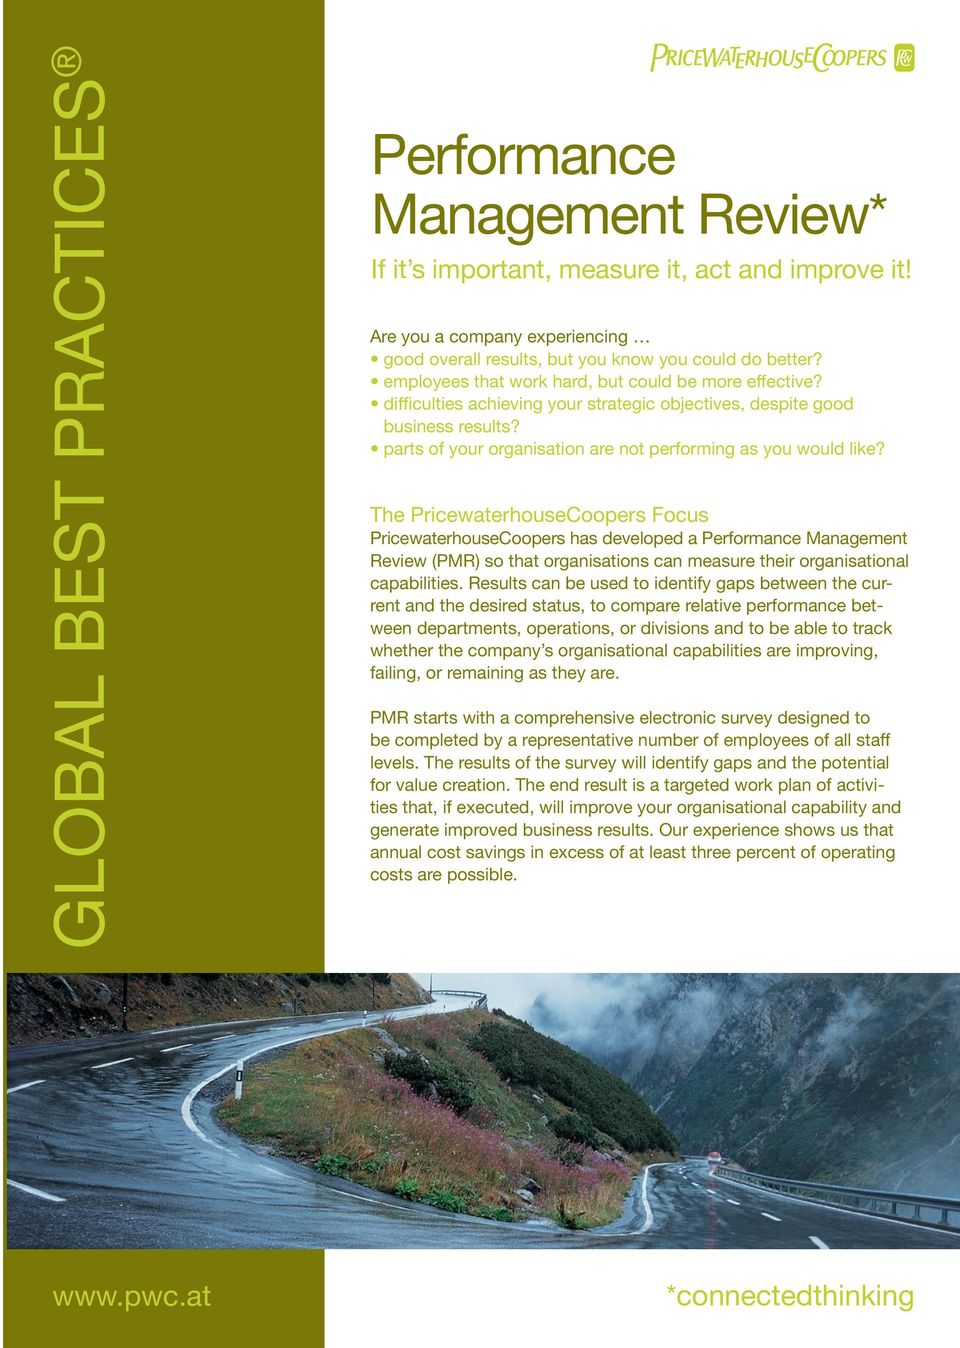 The Focus has developed a Performance Management Review (PMR) so that organisations can measure their organisational capabilities.